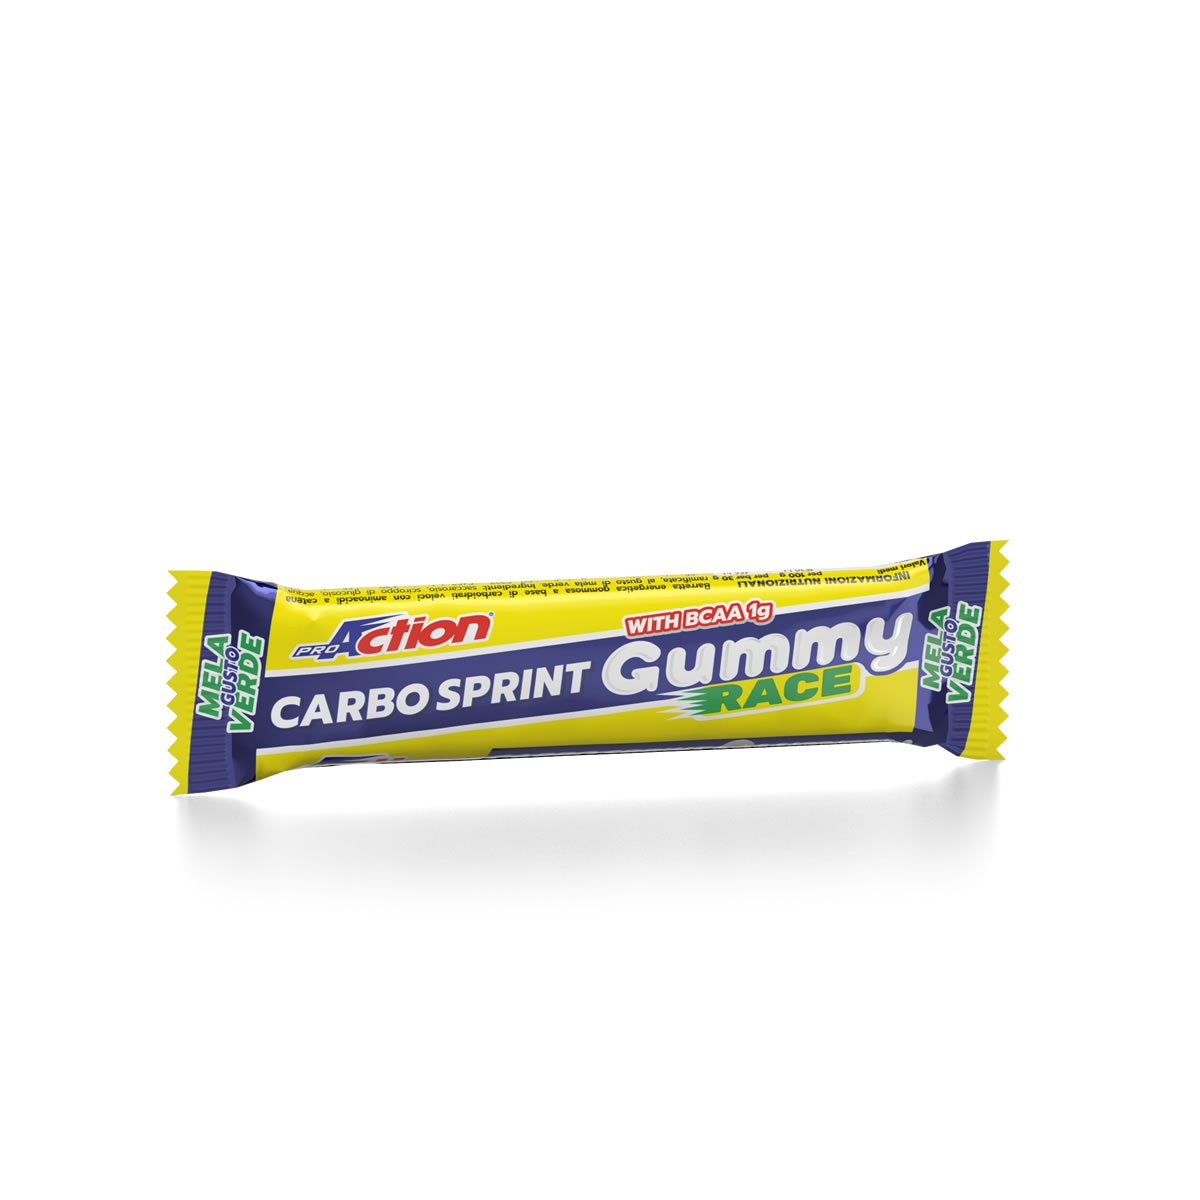 Carbo Sprint Gummy Race